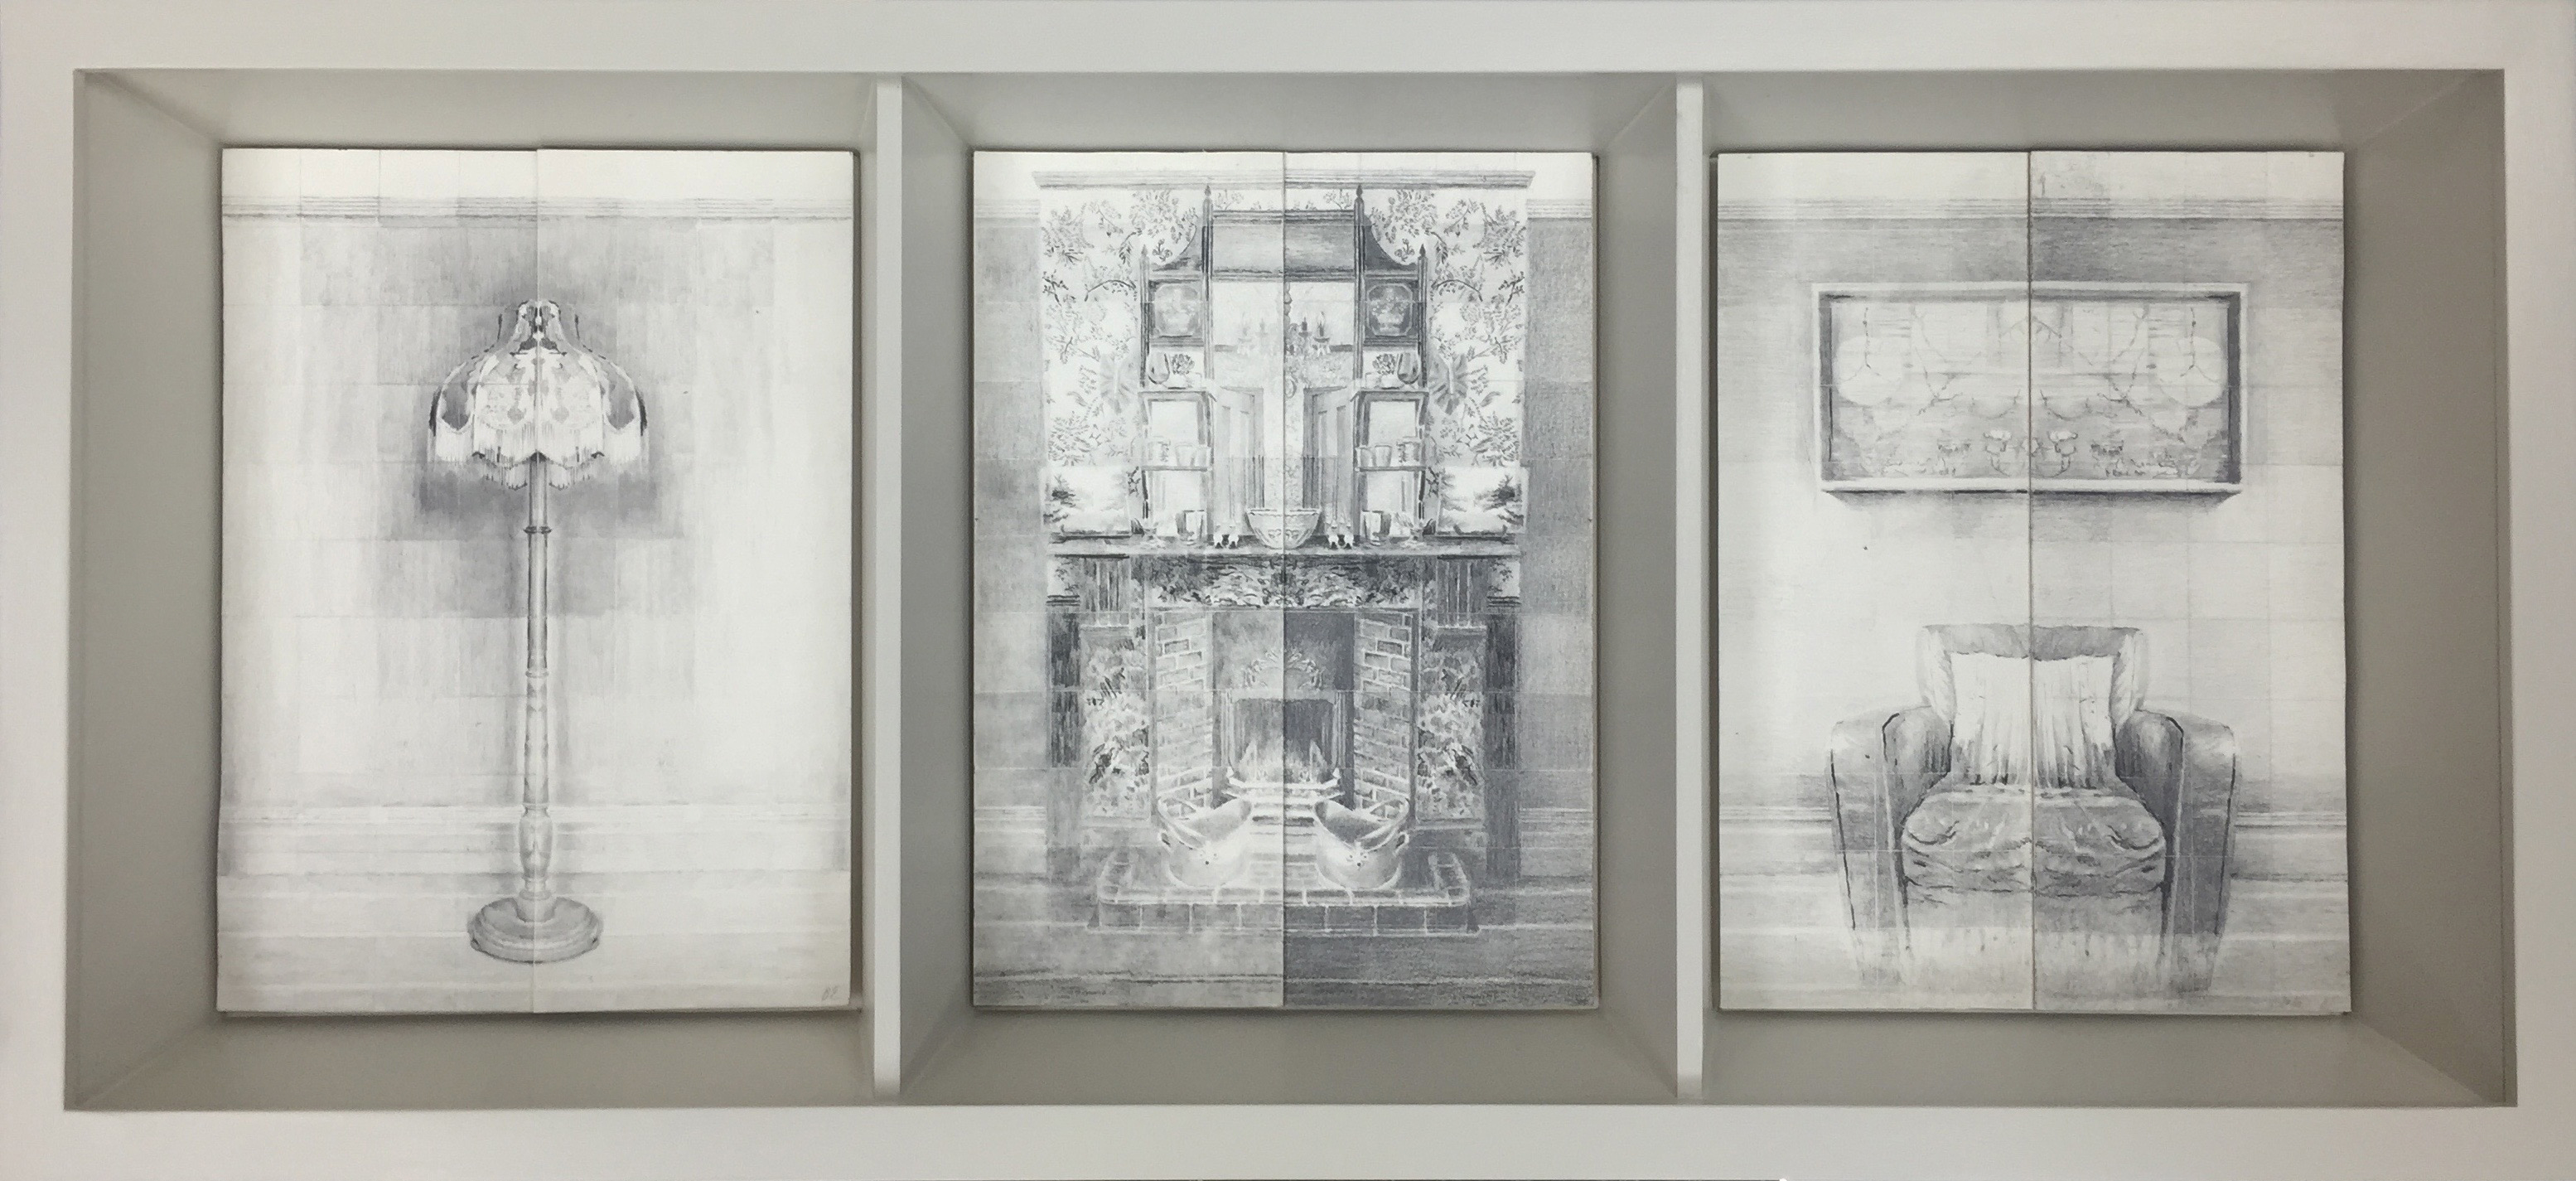 KROMA/Bella Easton, Myriorama Room Series, Lamp-fireplace-armchair, 2015, 80x37, graphite on velin arche